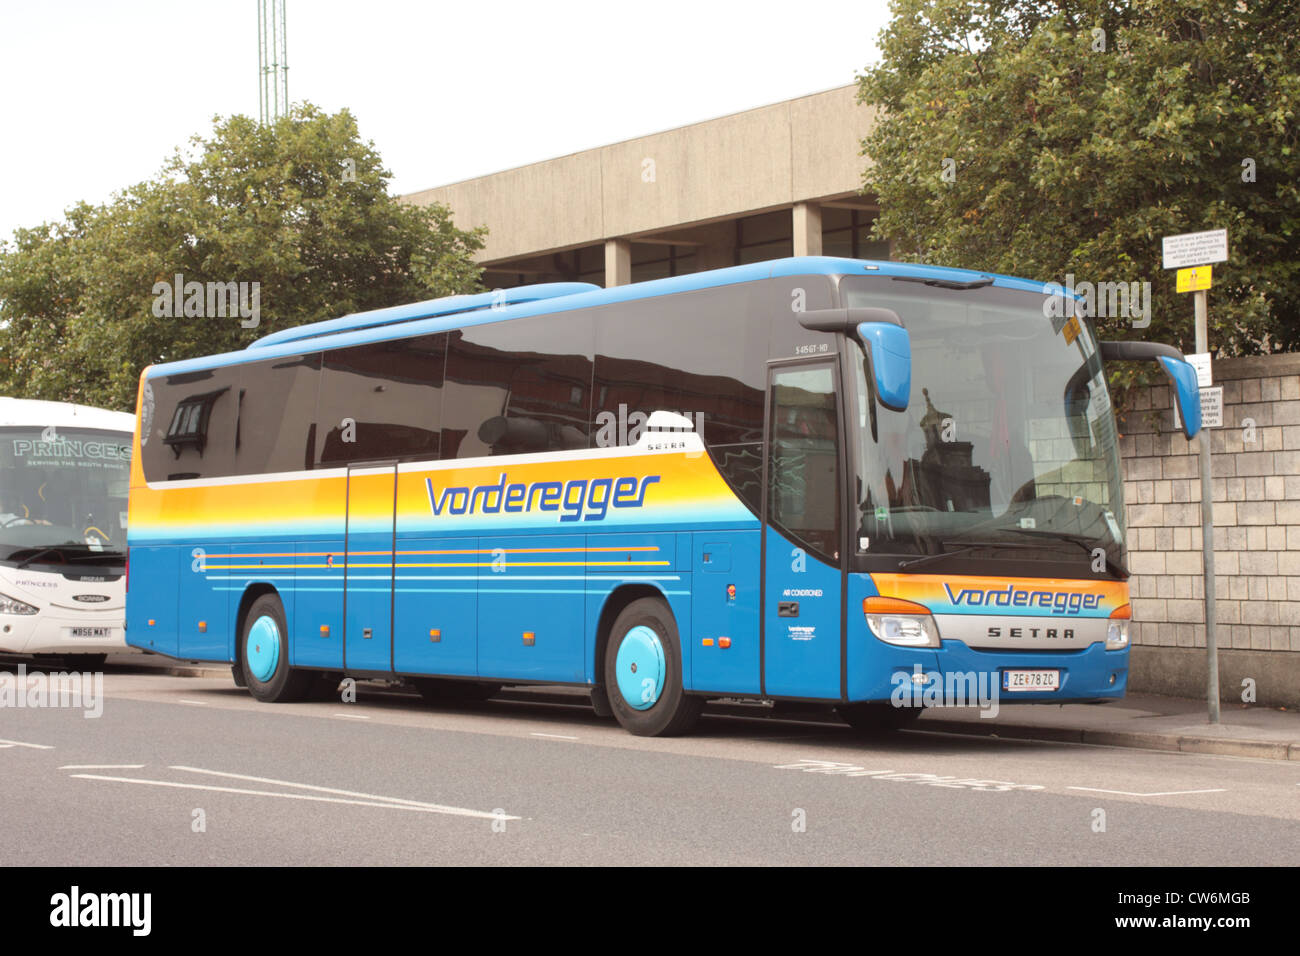 A Setra S415gt Hd Operated By Vorderegger Reisen Of Zell Am See Stock Photo Alamy